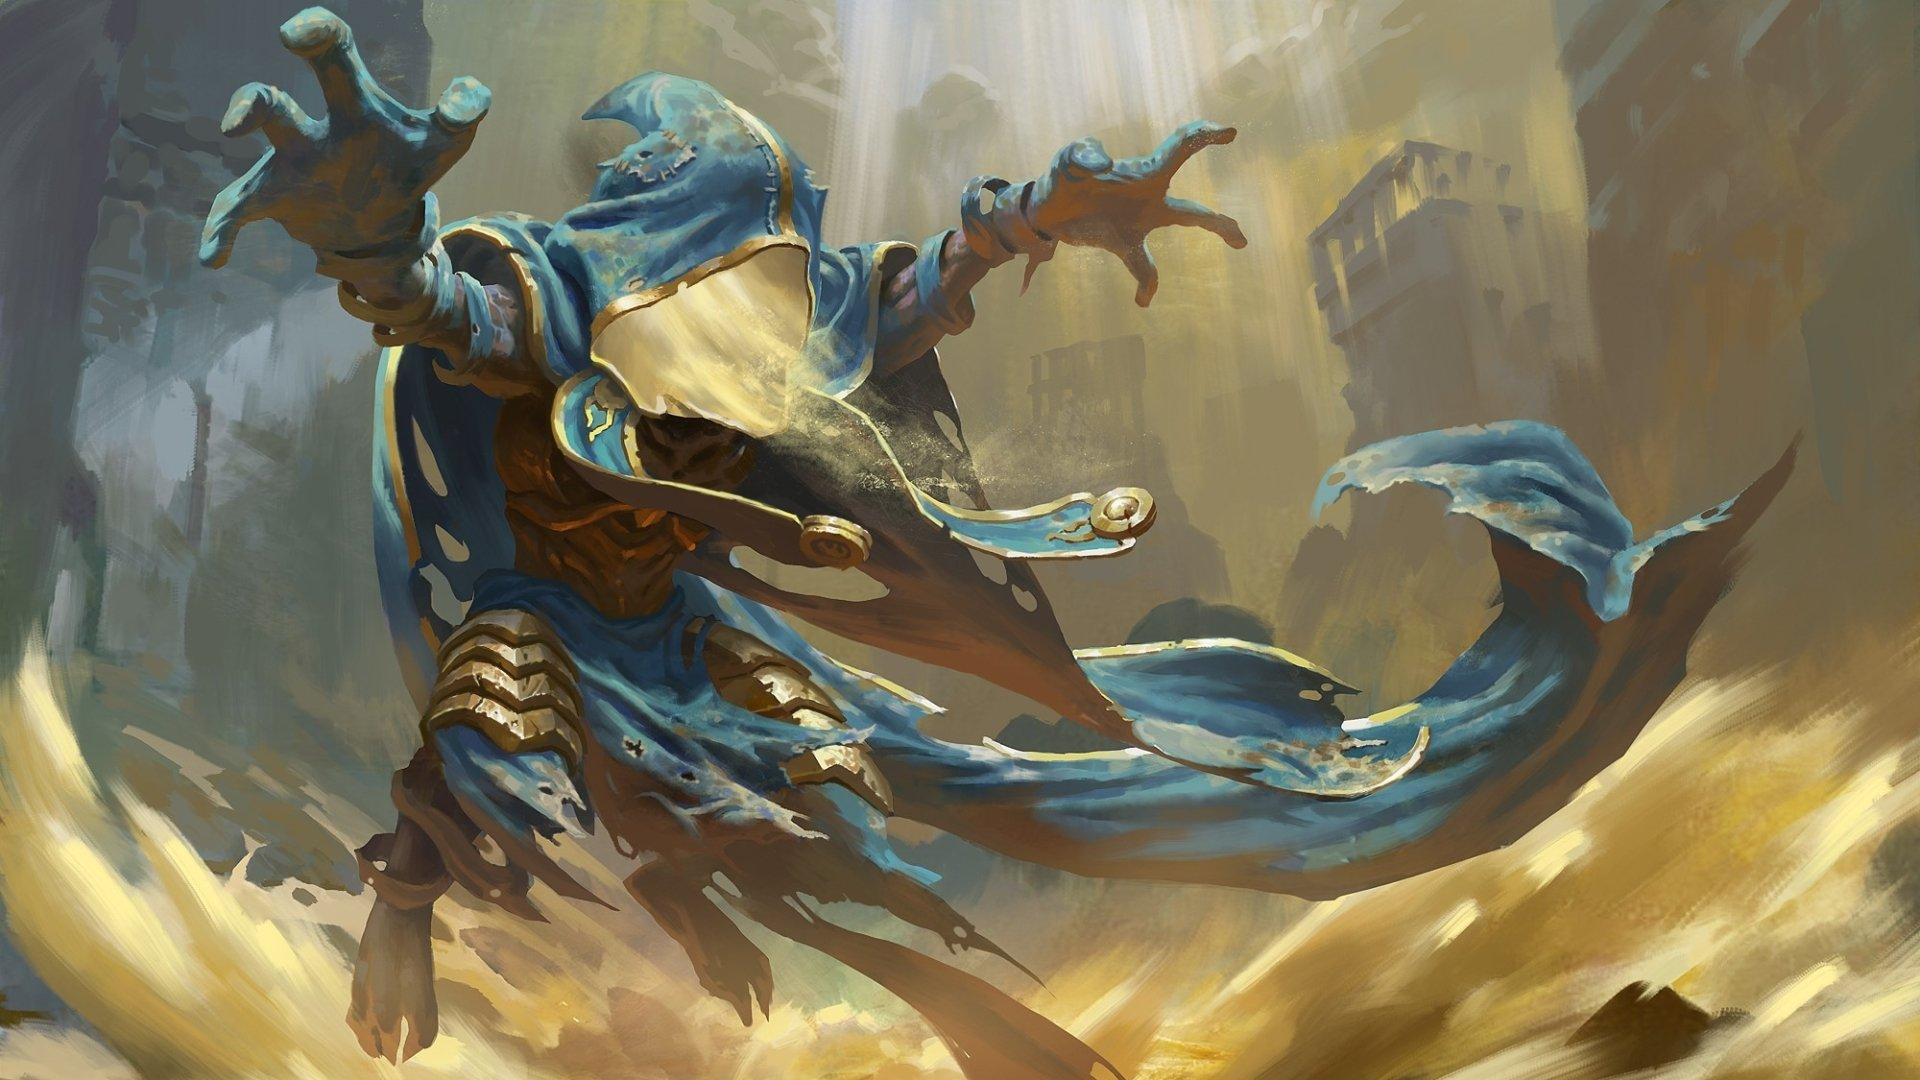 Fantasy Wizard Background 1 Hd Wallpapers: Sand Wizard Full HD Wallpaper And Background Image